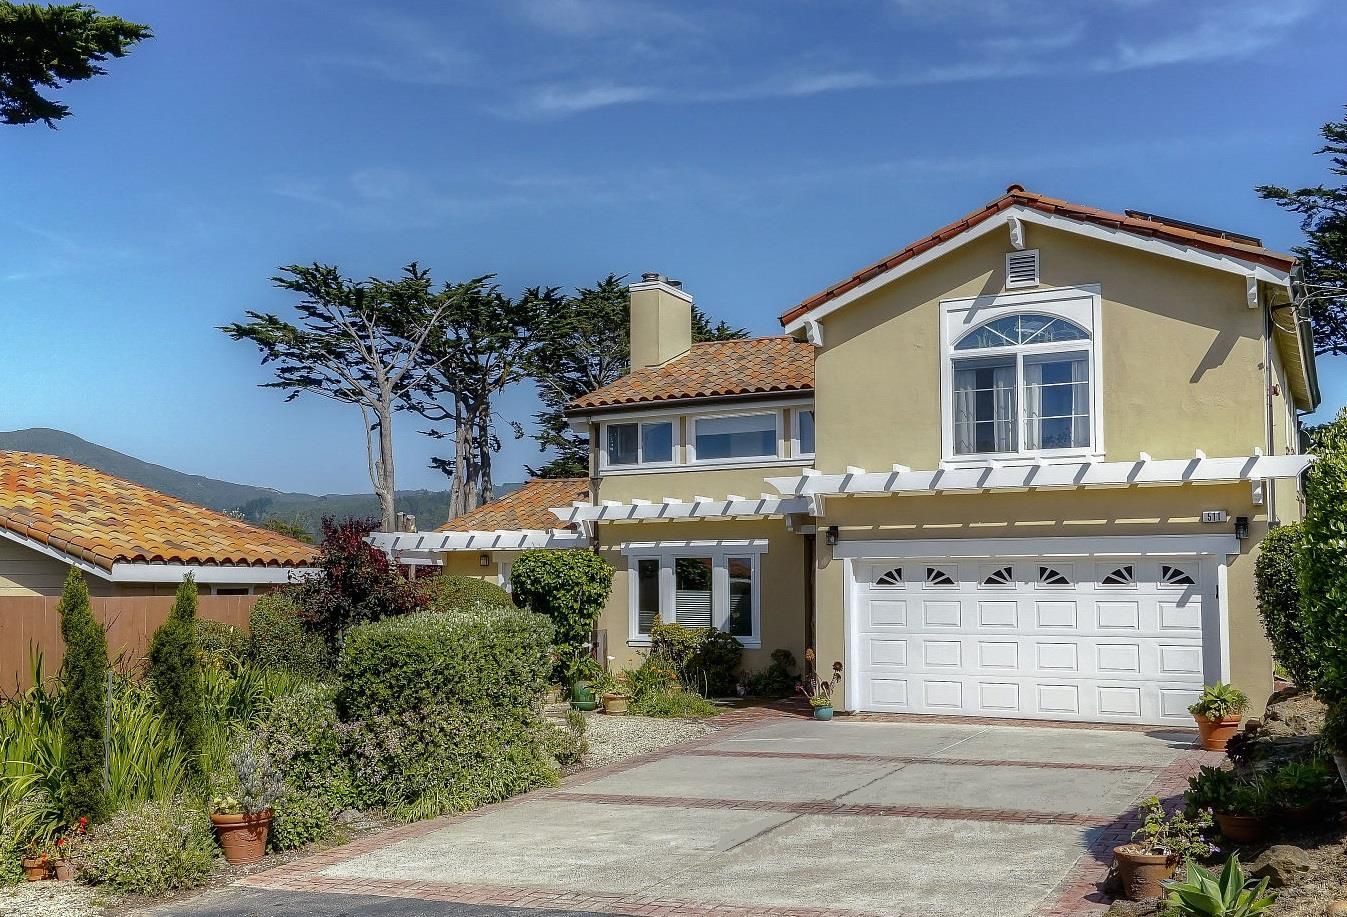 Single Family Home for Sale at 511 8th Street Montara, California 94037 United States